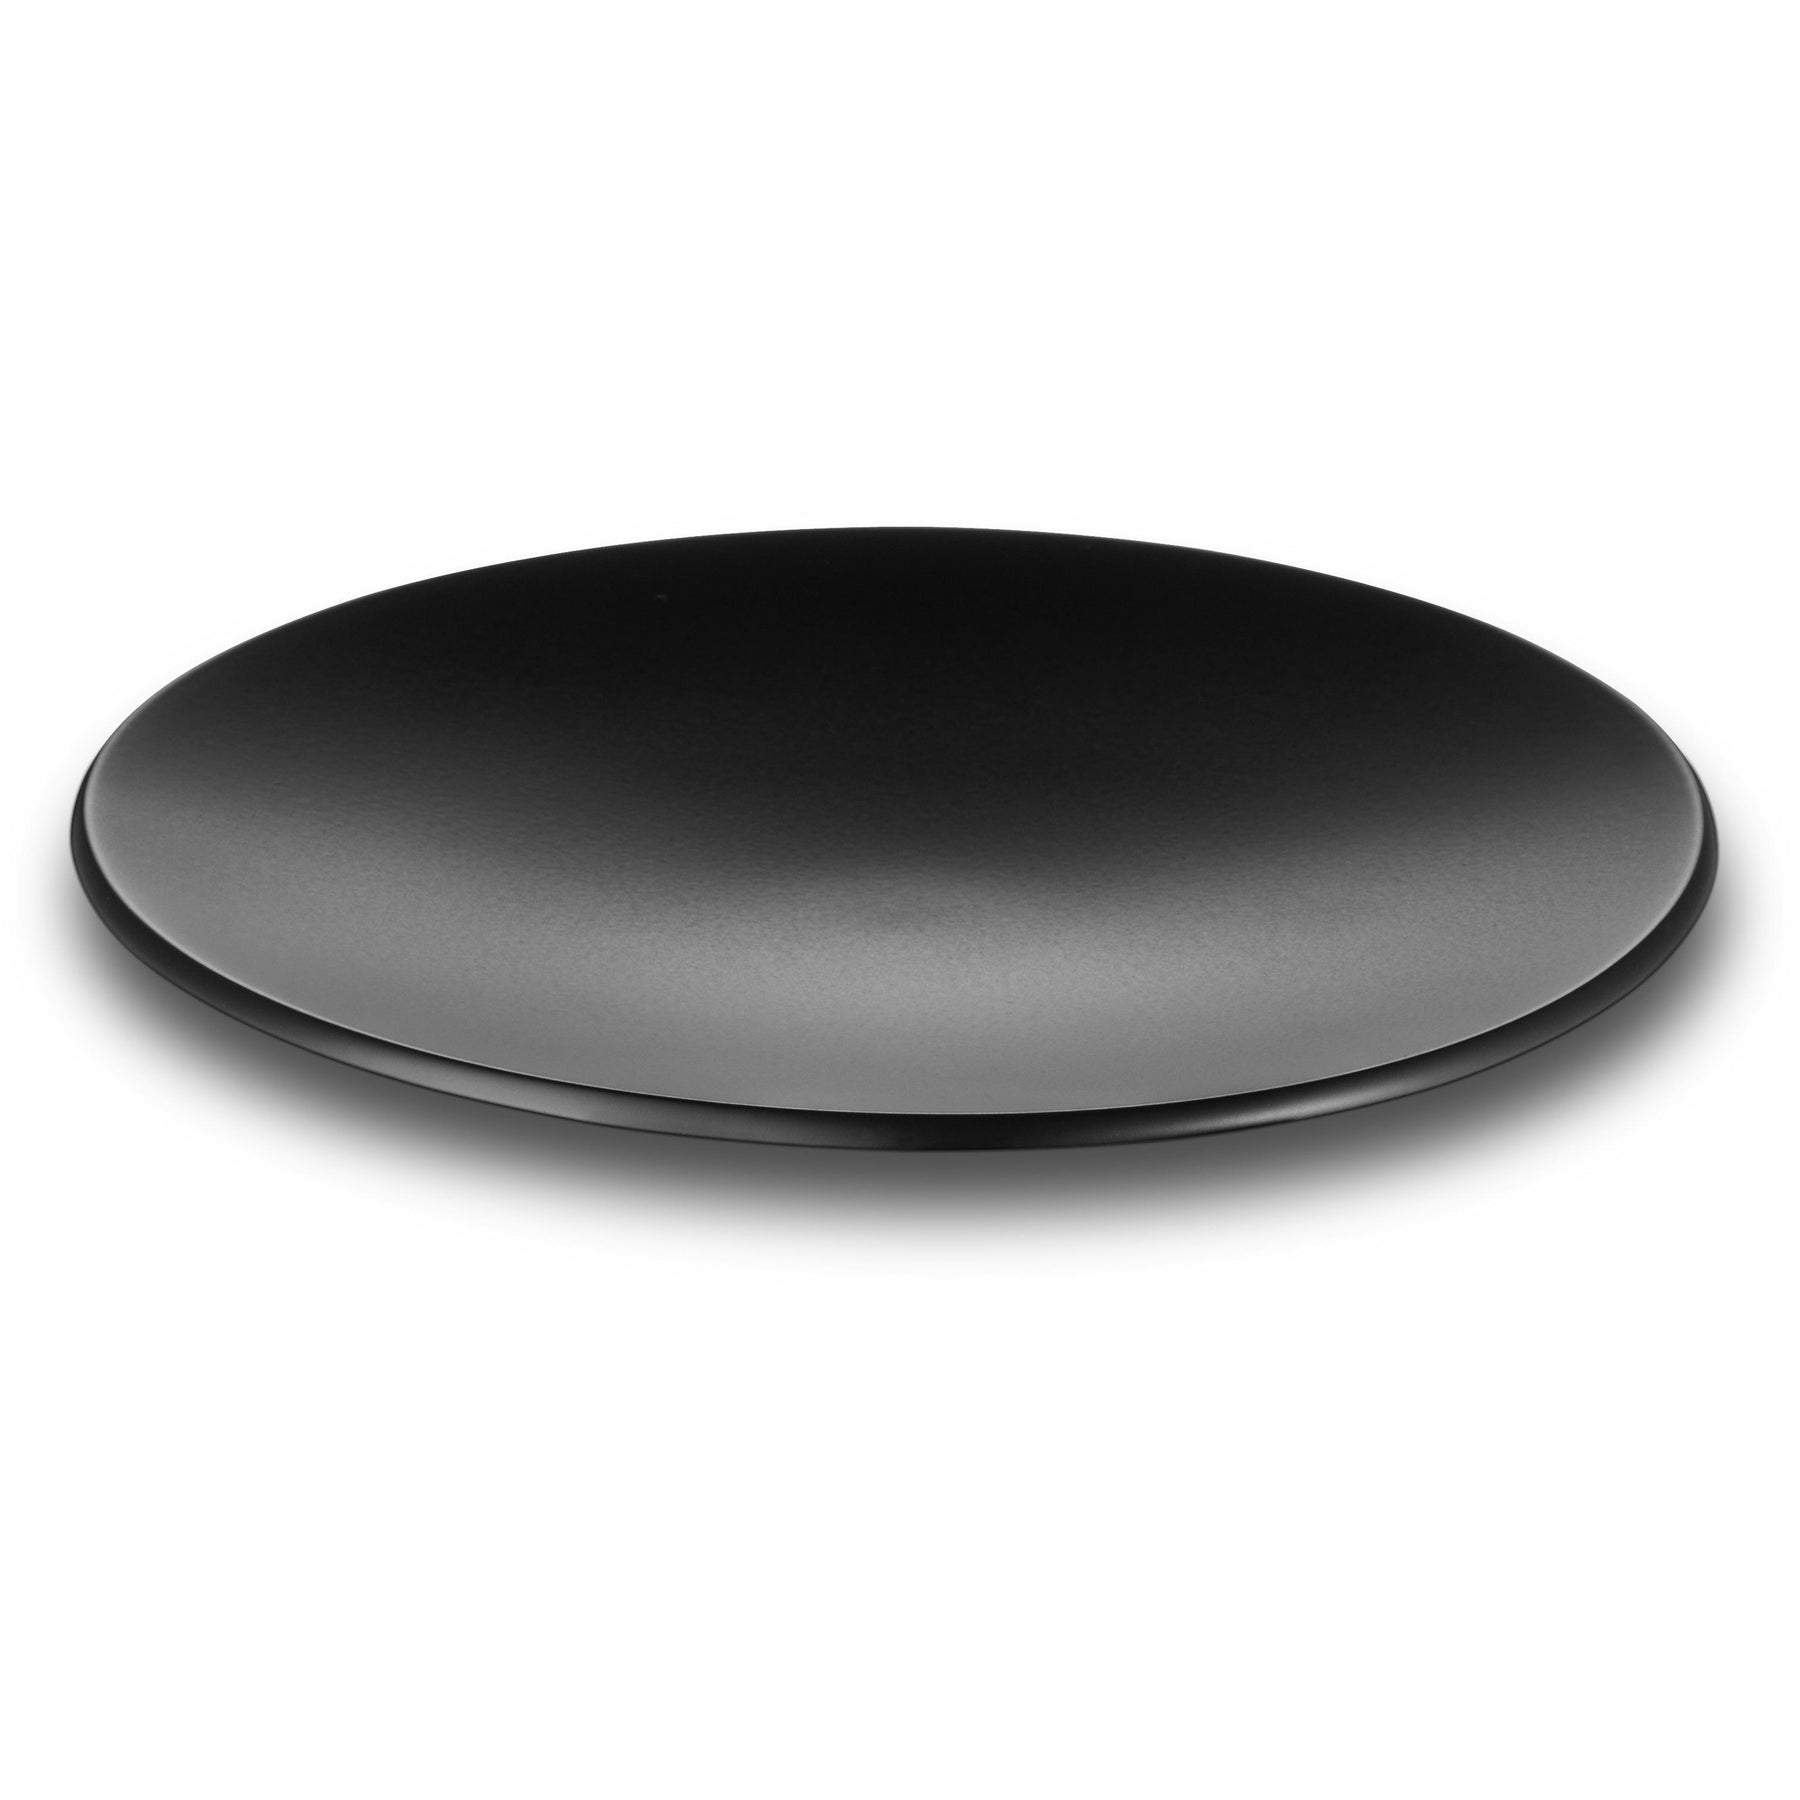 Black Free Standing Round Soap Dish Holder Tray Brass W Luxury Dishes Holders 150 00 200 Returns Polished Chrome Gold